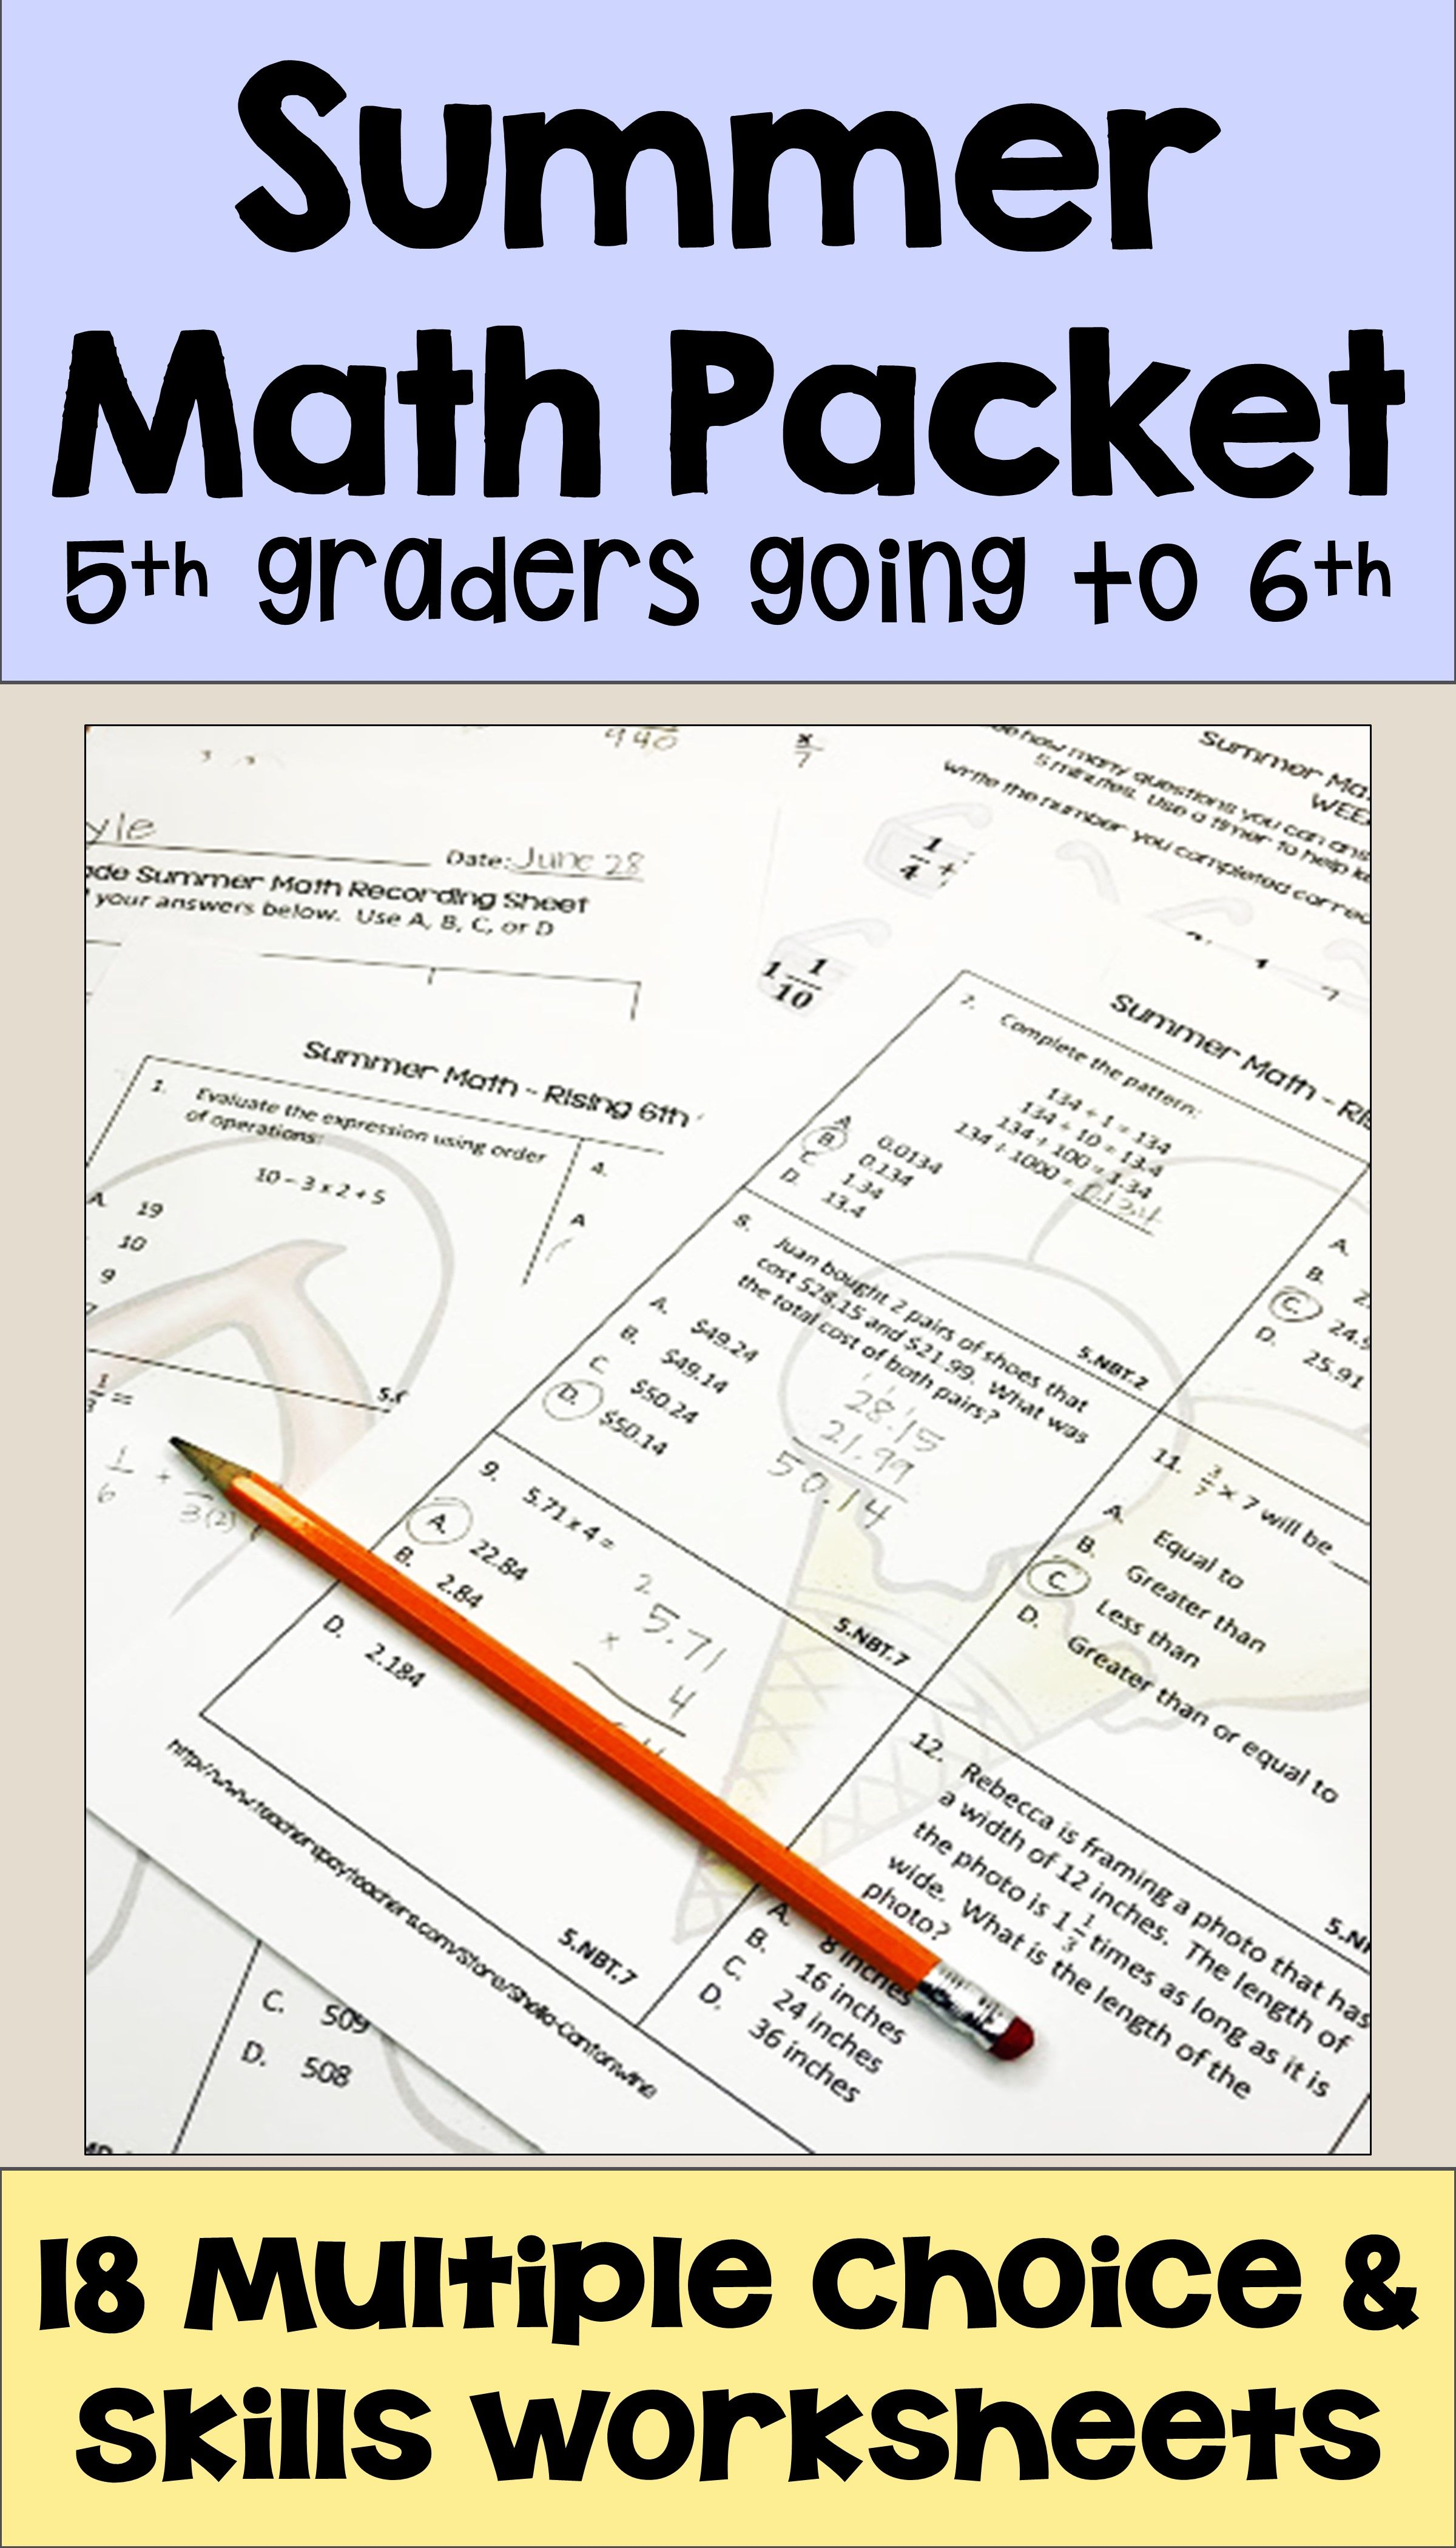 Summer Math Packet For Rising 6th Graders